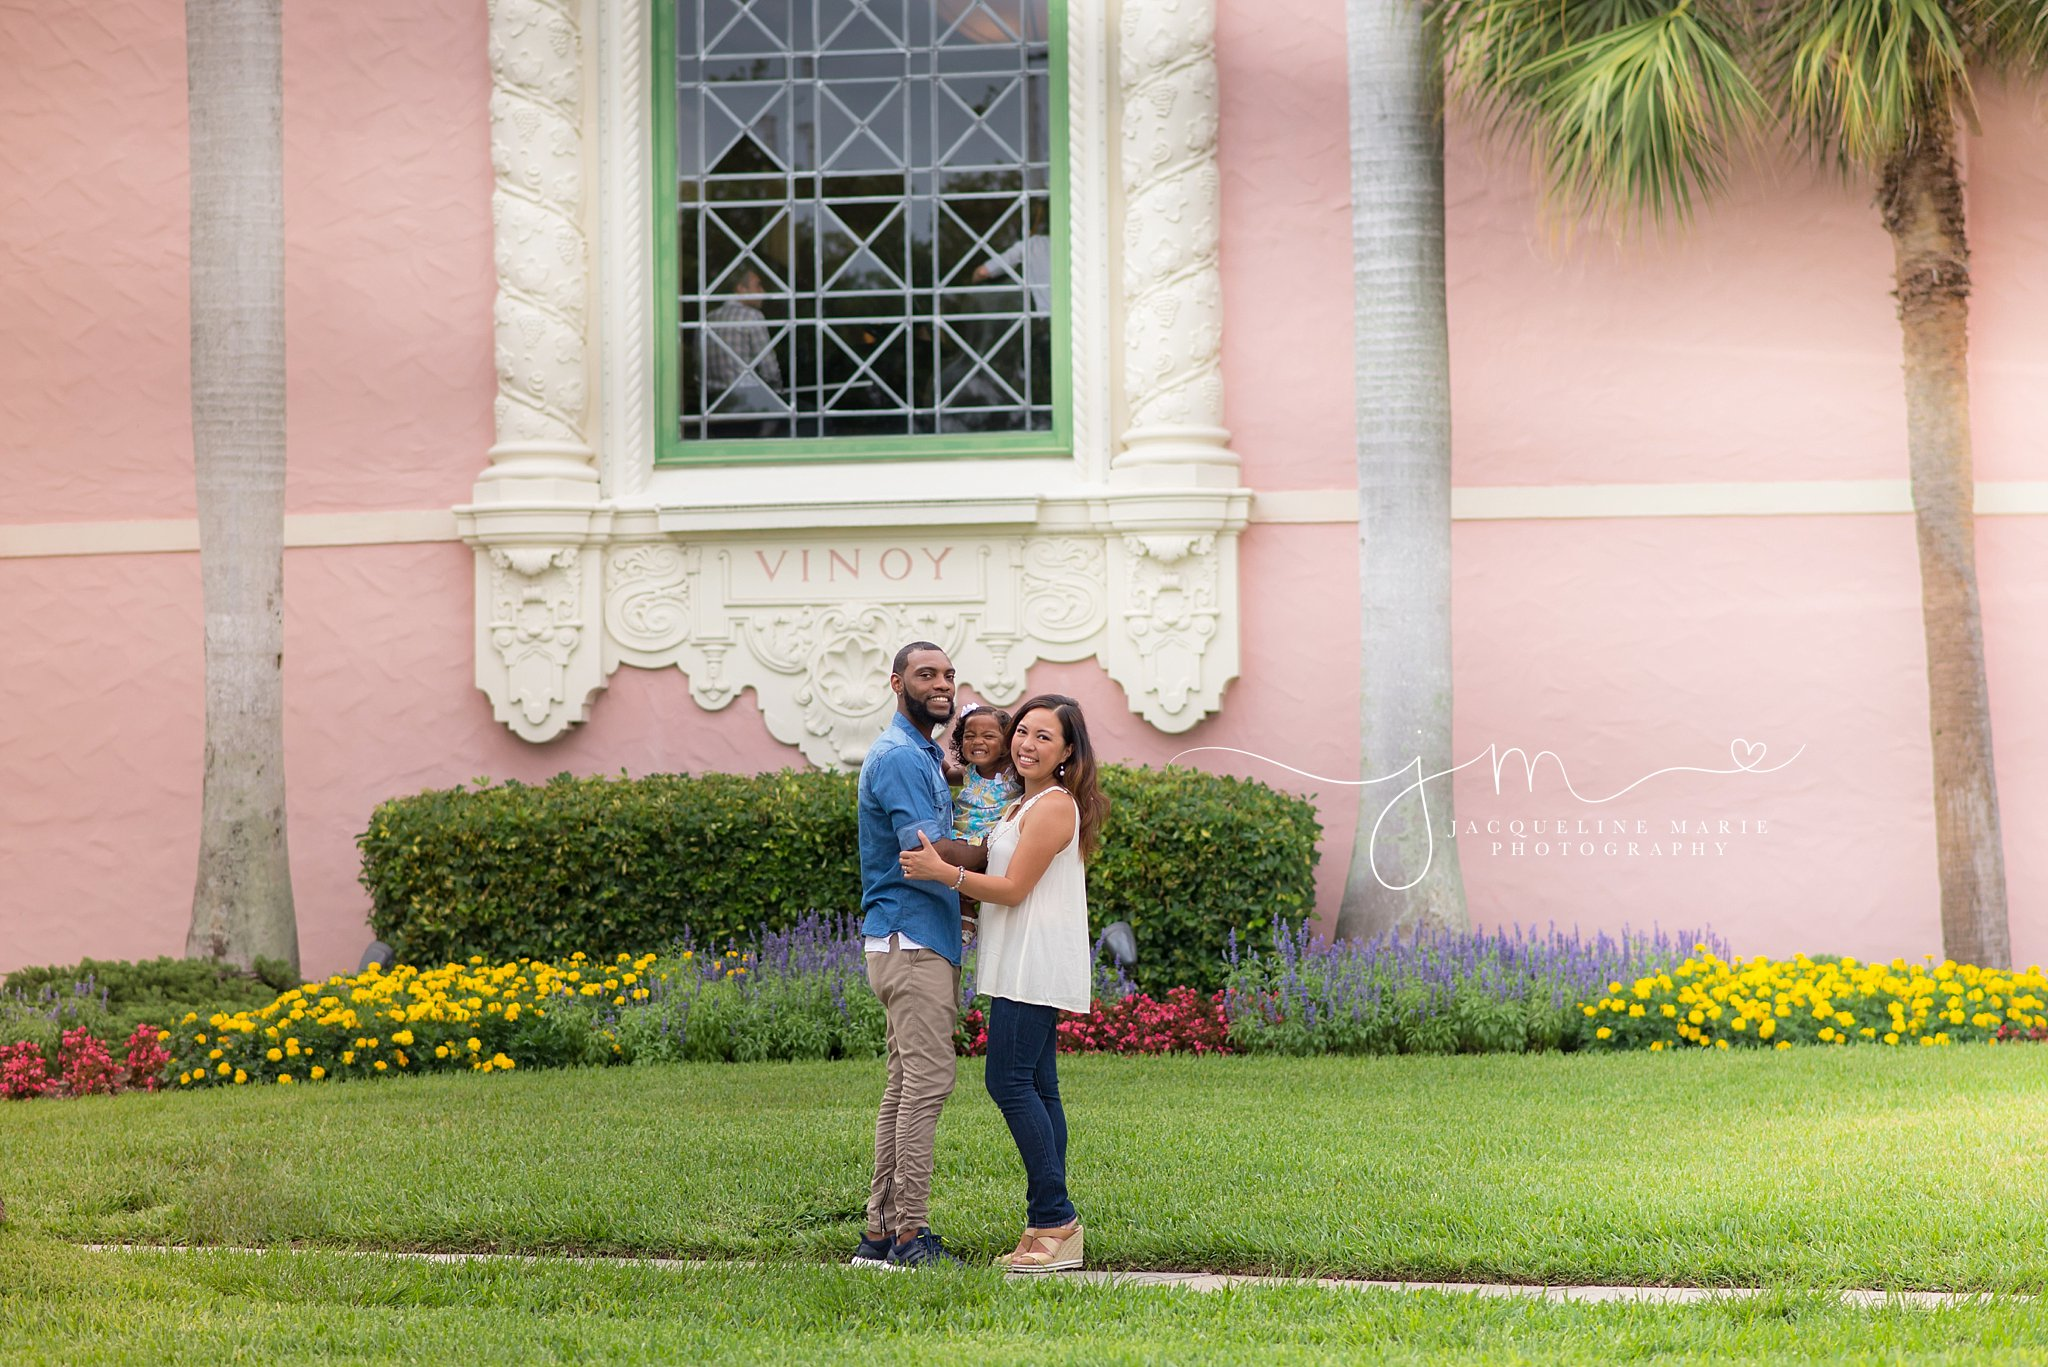 Vinoy Park St. Petersburg, family photography, family of three pose